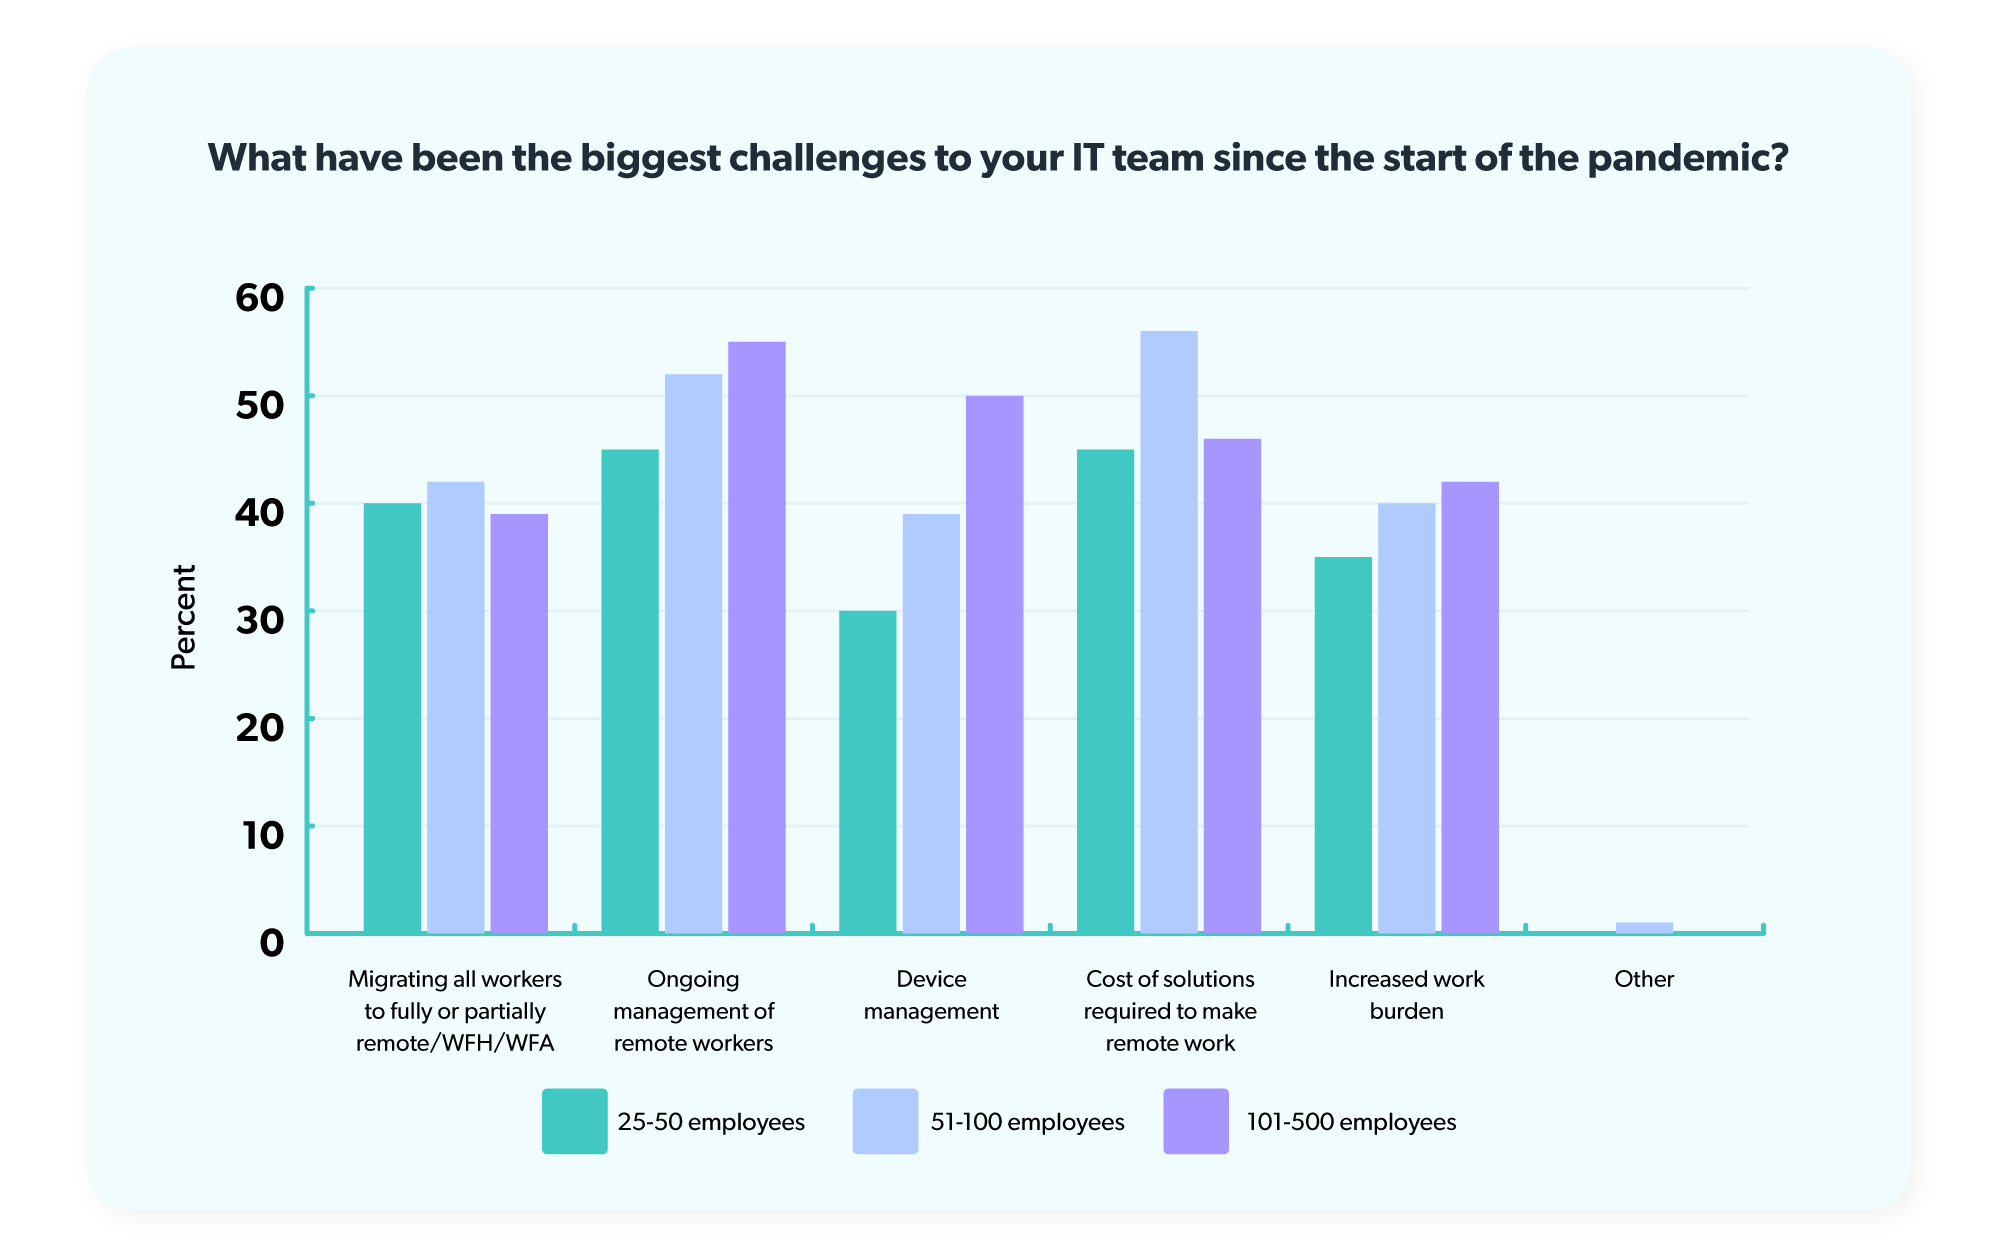 Managing remote workers, the cost of solutions required to support remote work, device management, and migrating to remote work have been IT teams' biggest challenges since the start of the pandemic.